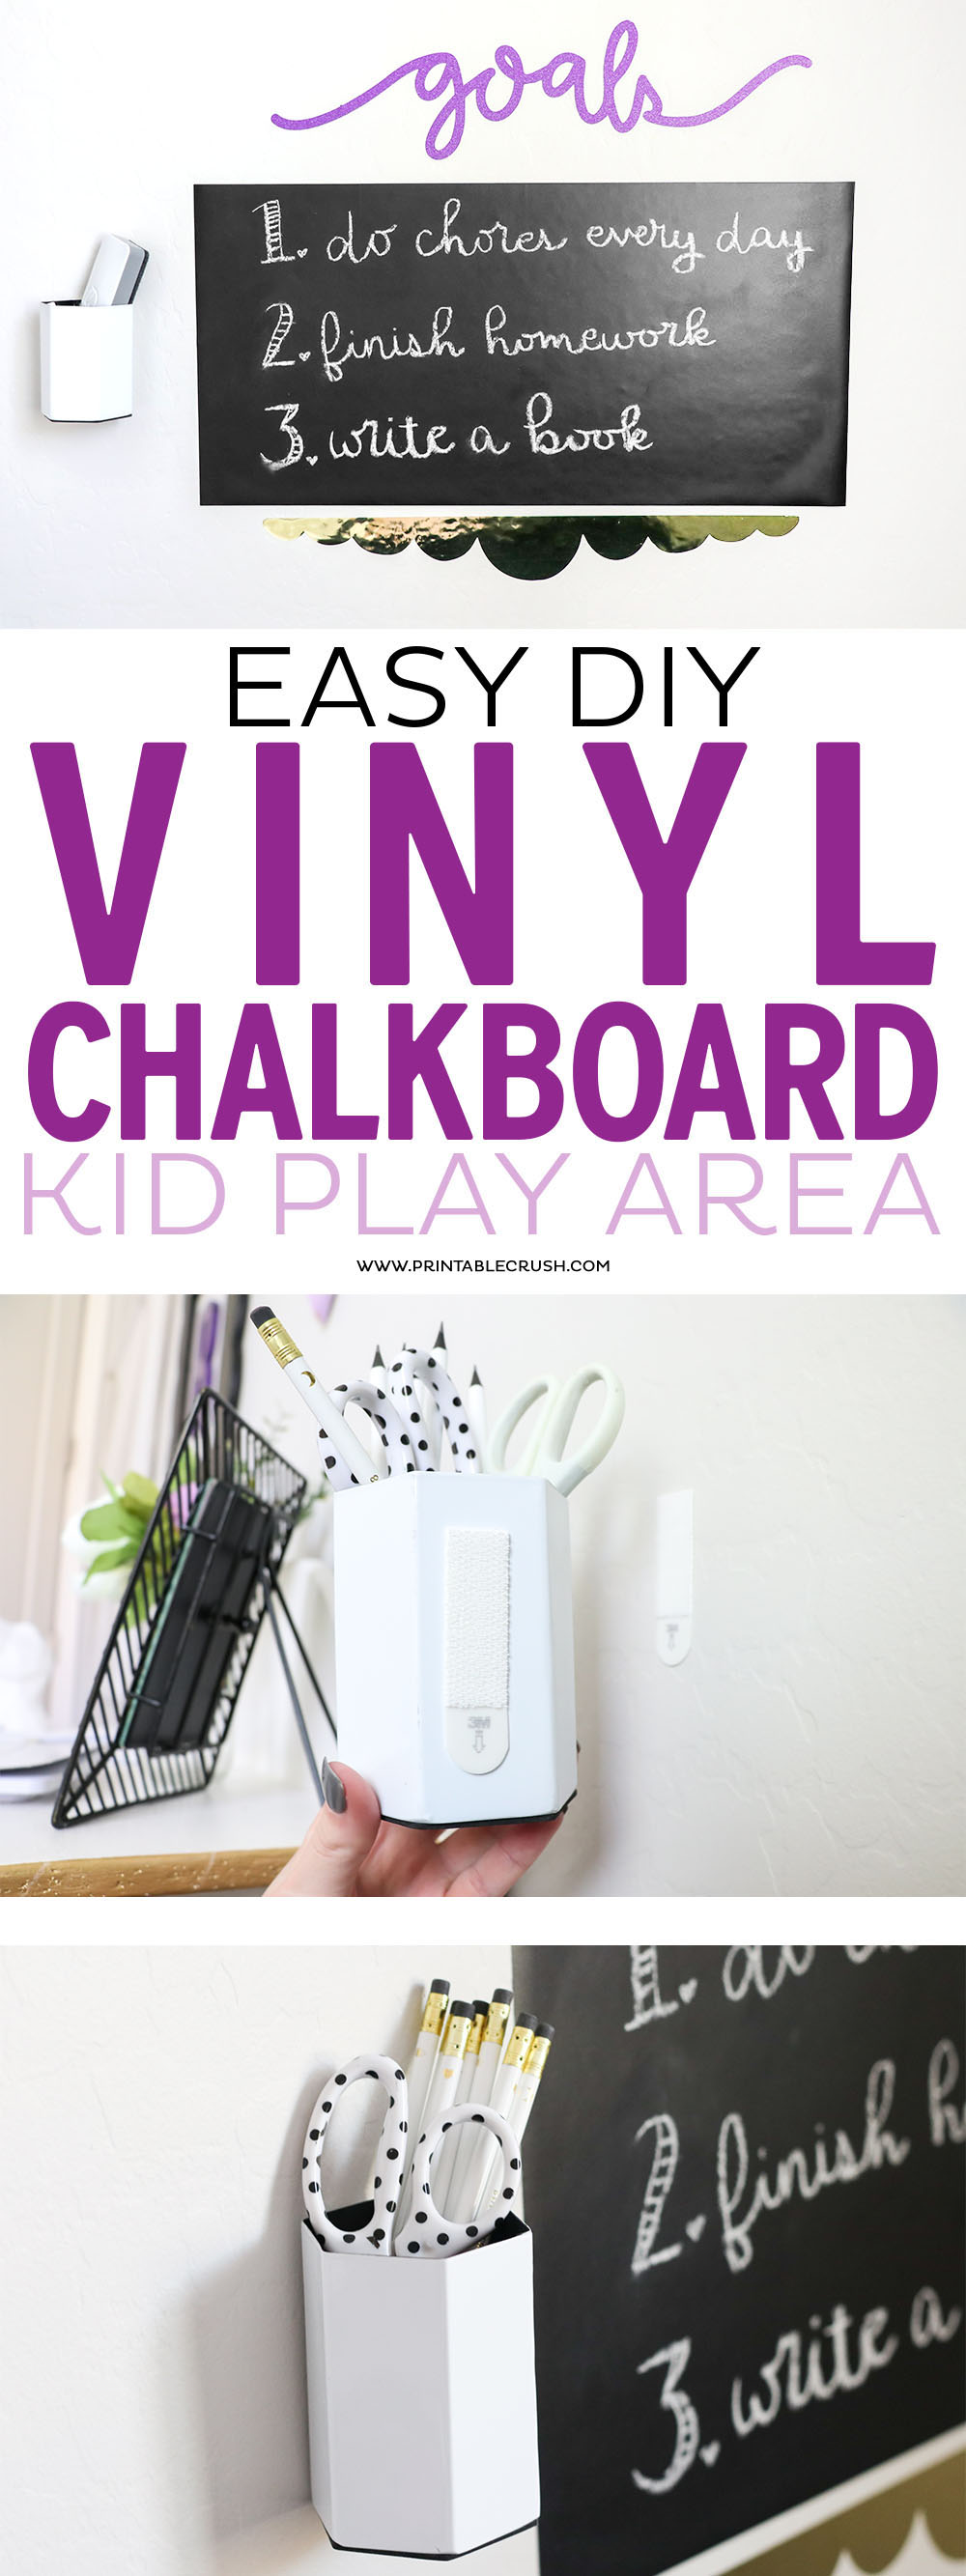 Your child will love to have this DIY Vinyl Chalkboard in their play area!